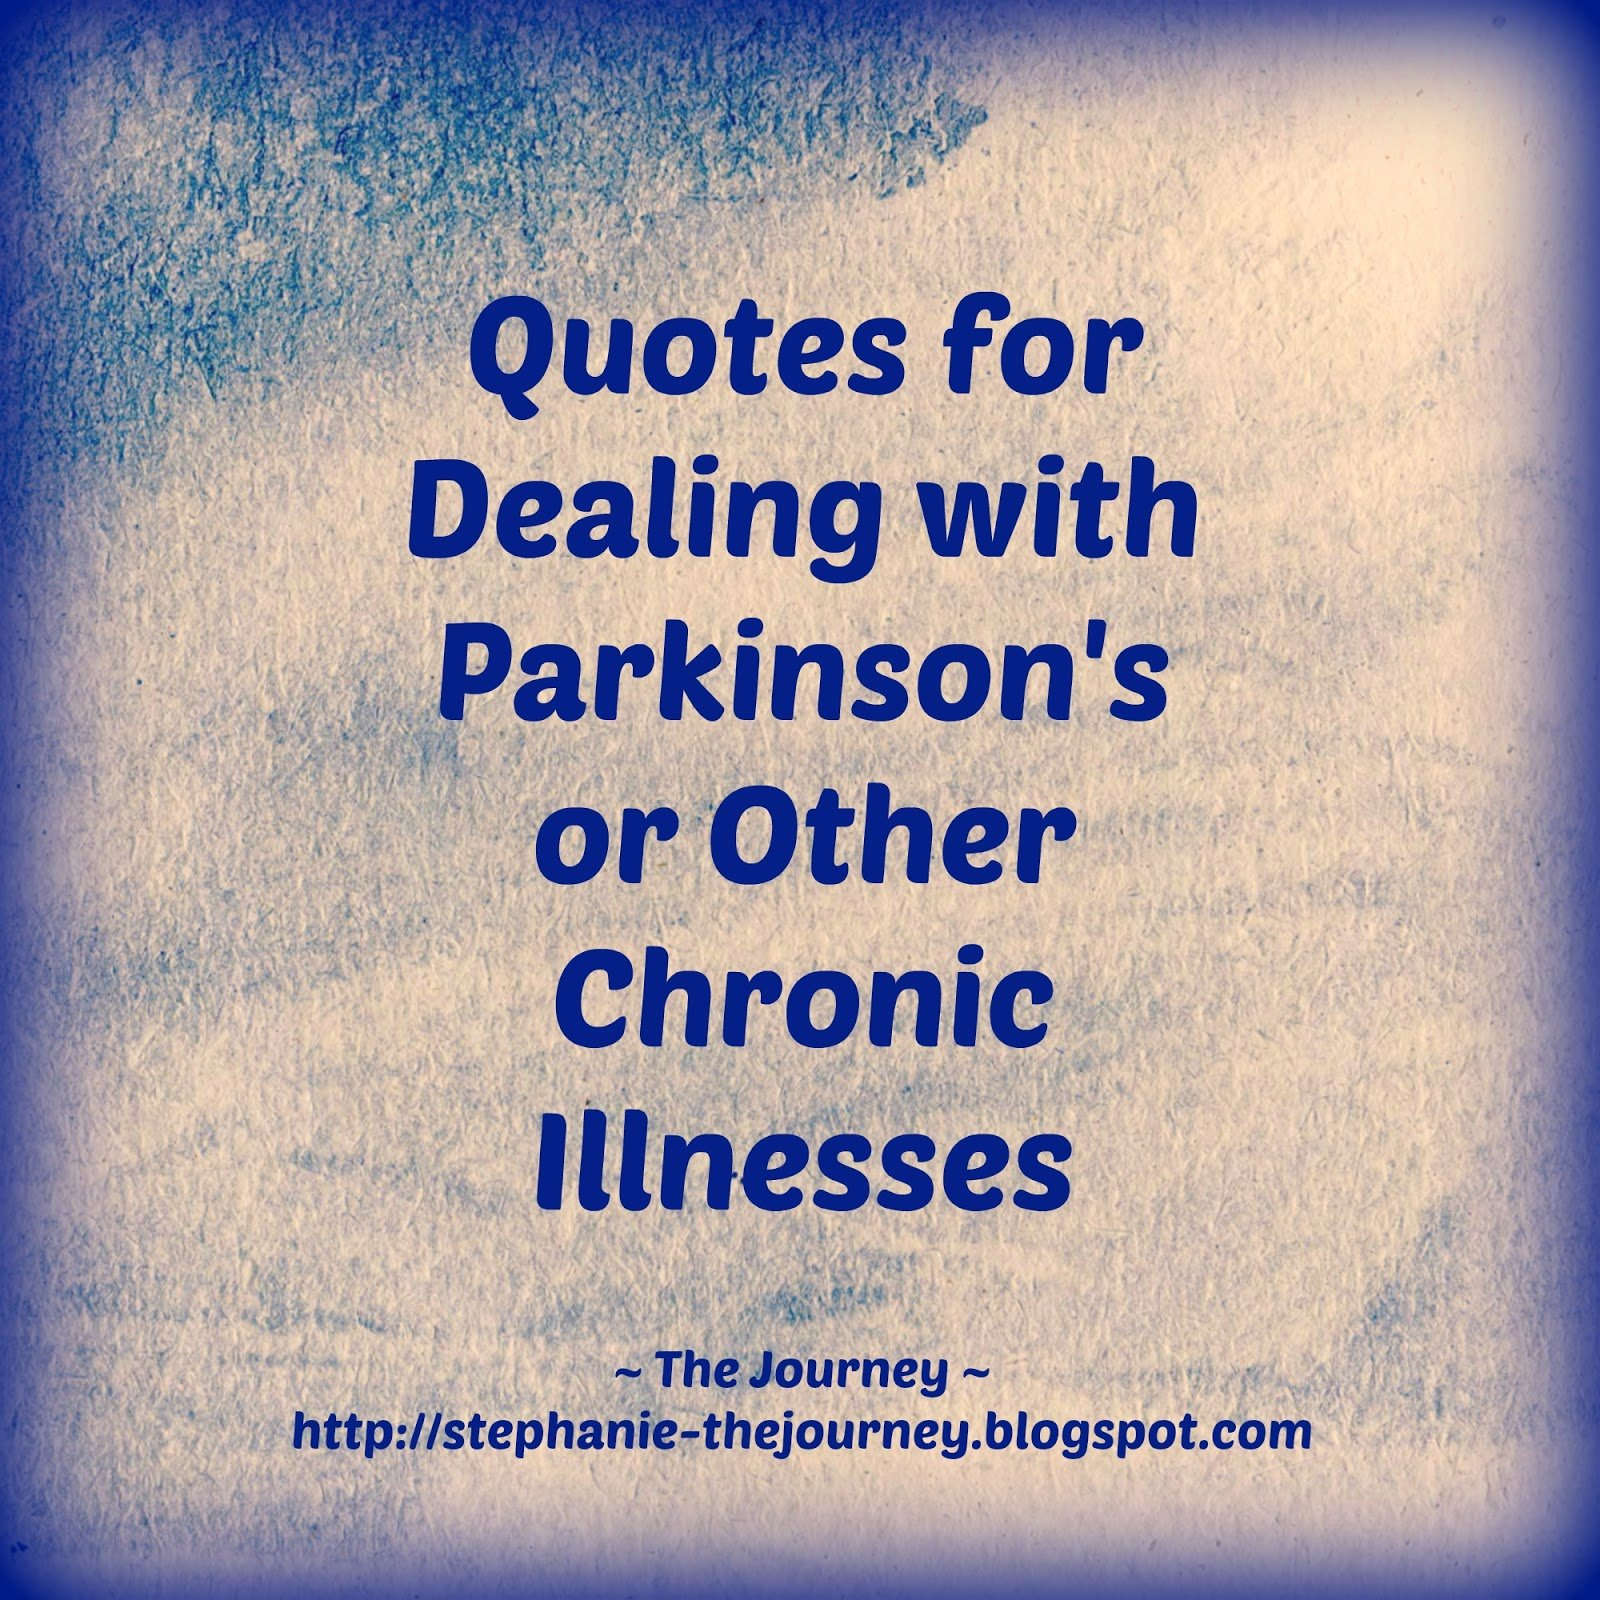 Inspirational Quotes Motivation: Motivational Quotes For Illness. QuotesGram